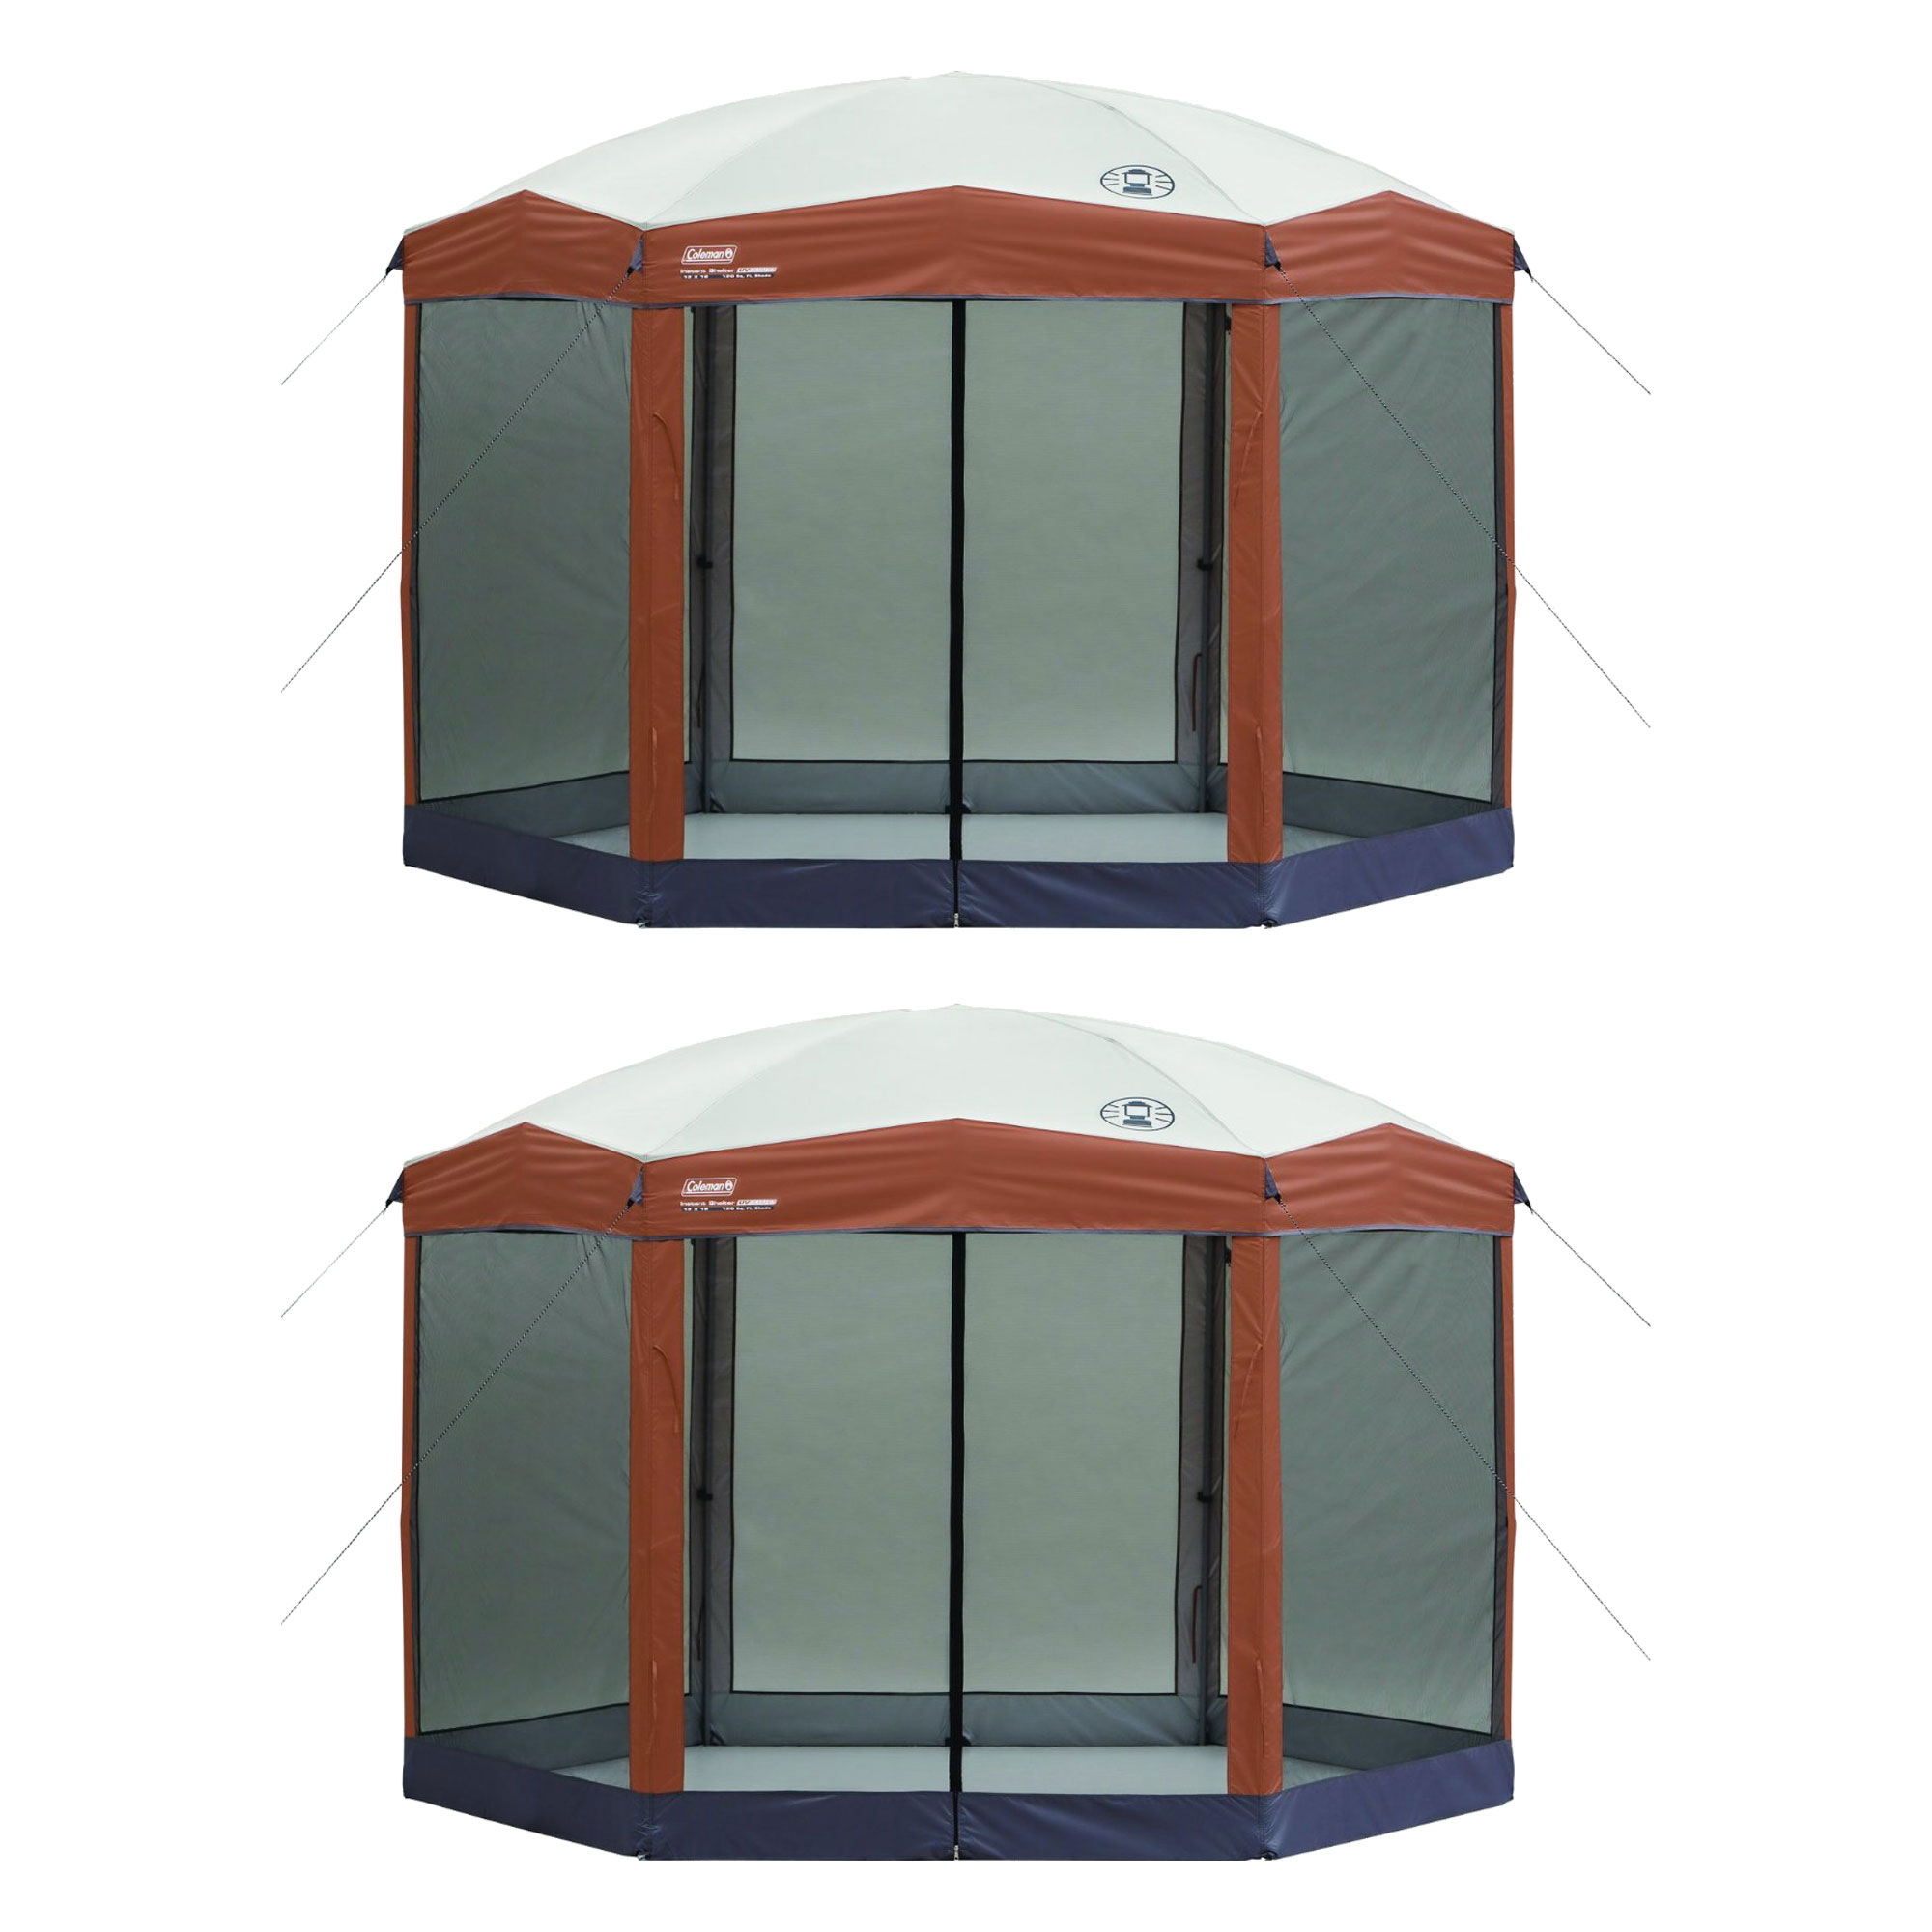 Coleman Back Home 12 x 10-Foot Instant Screen House Hexagon Canopy (2 Pack)